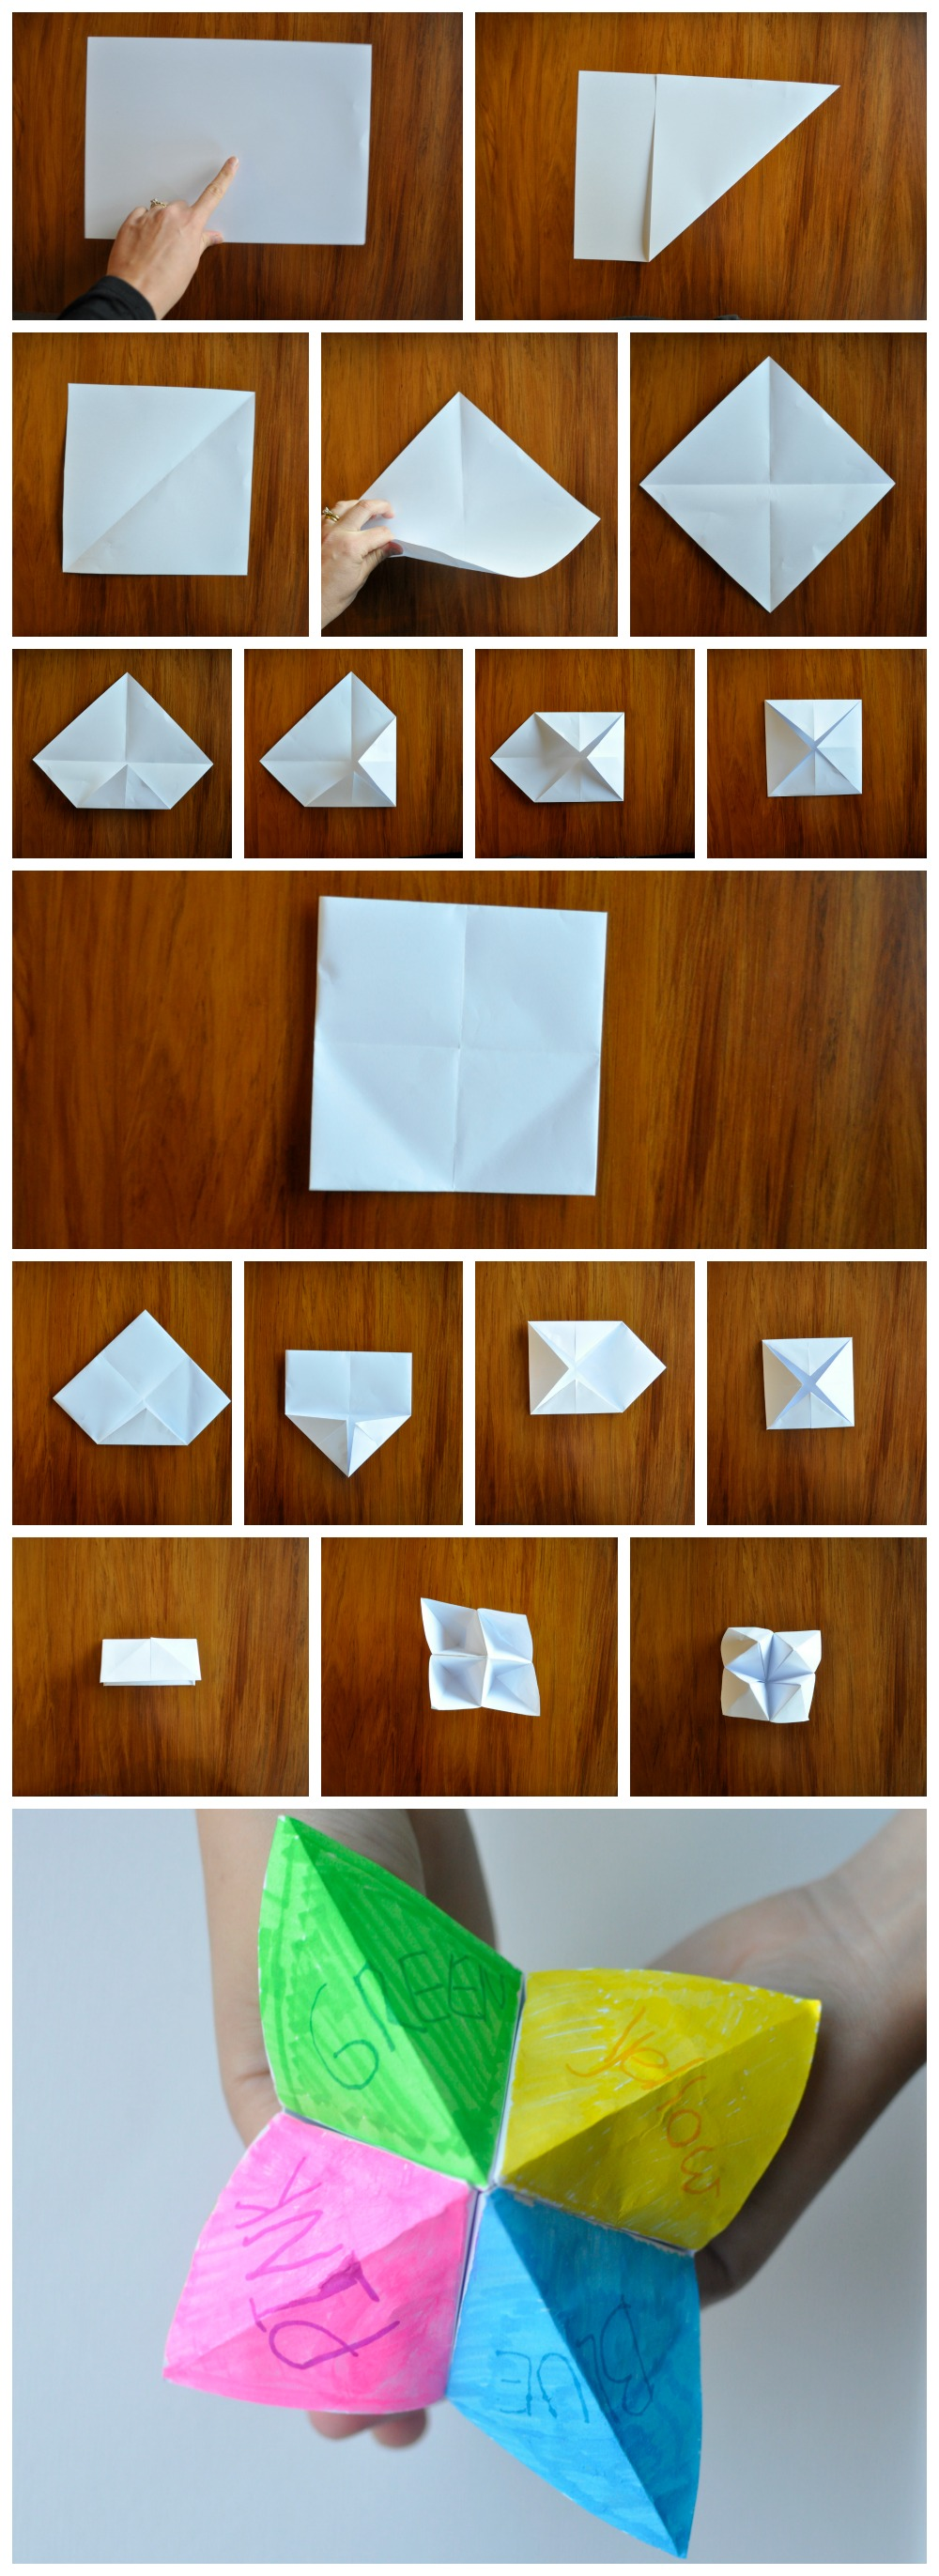 How to make a Chatterbox - Classic game